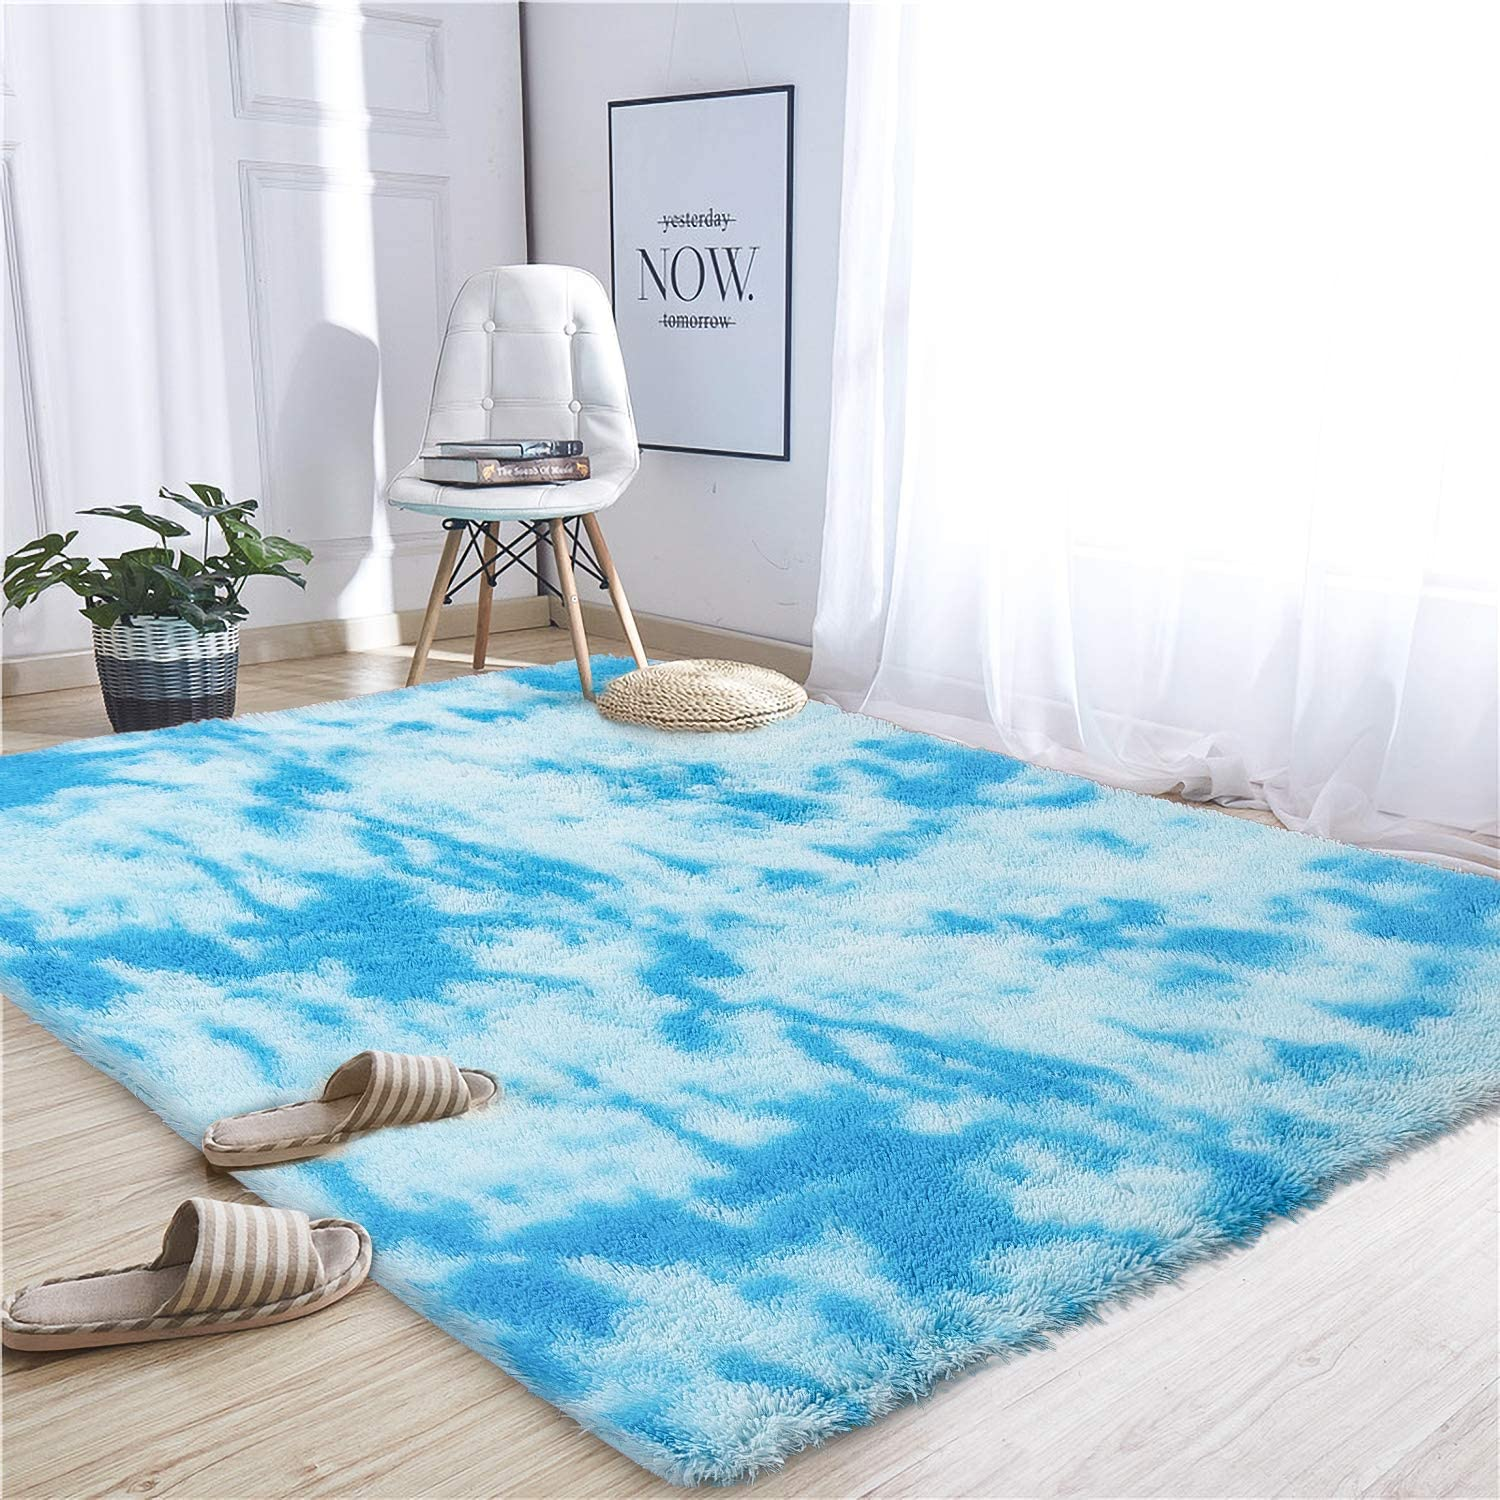 Noahas Abstract Shaggy Rug for Bedroom Ultra Soft Fluffy Carpets for Kids Nursery Teens Room Girls Boys Thick Accent Rugs Home Bedrooms Floor Decorative, 4 ft x 6 ft, Sky Blue